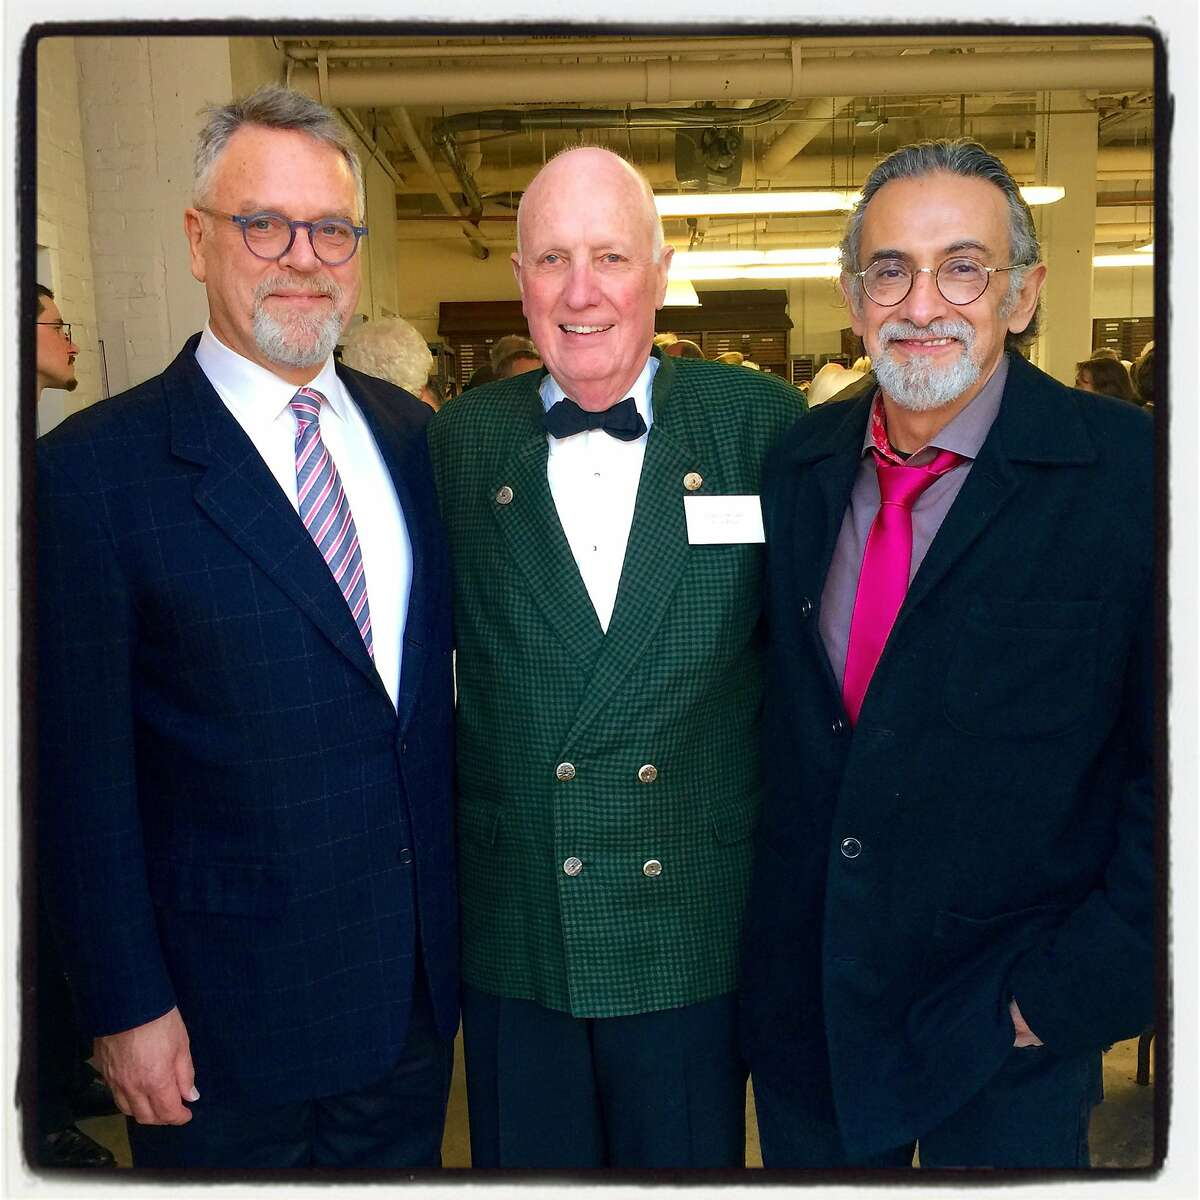 Chronicle Books Publisher Nion McEvoy (left) with Arion Press Publisher Andrew Hoyem and artist Enrique Chagoya at the Grabhorn Institute Dinner. May 2016.